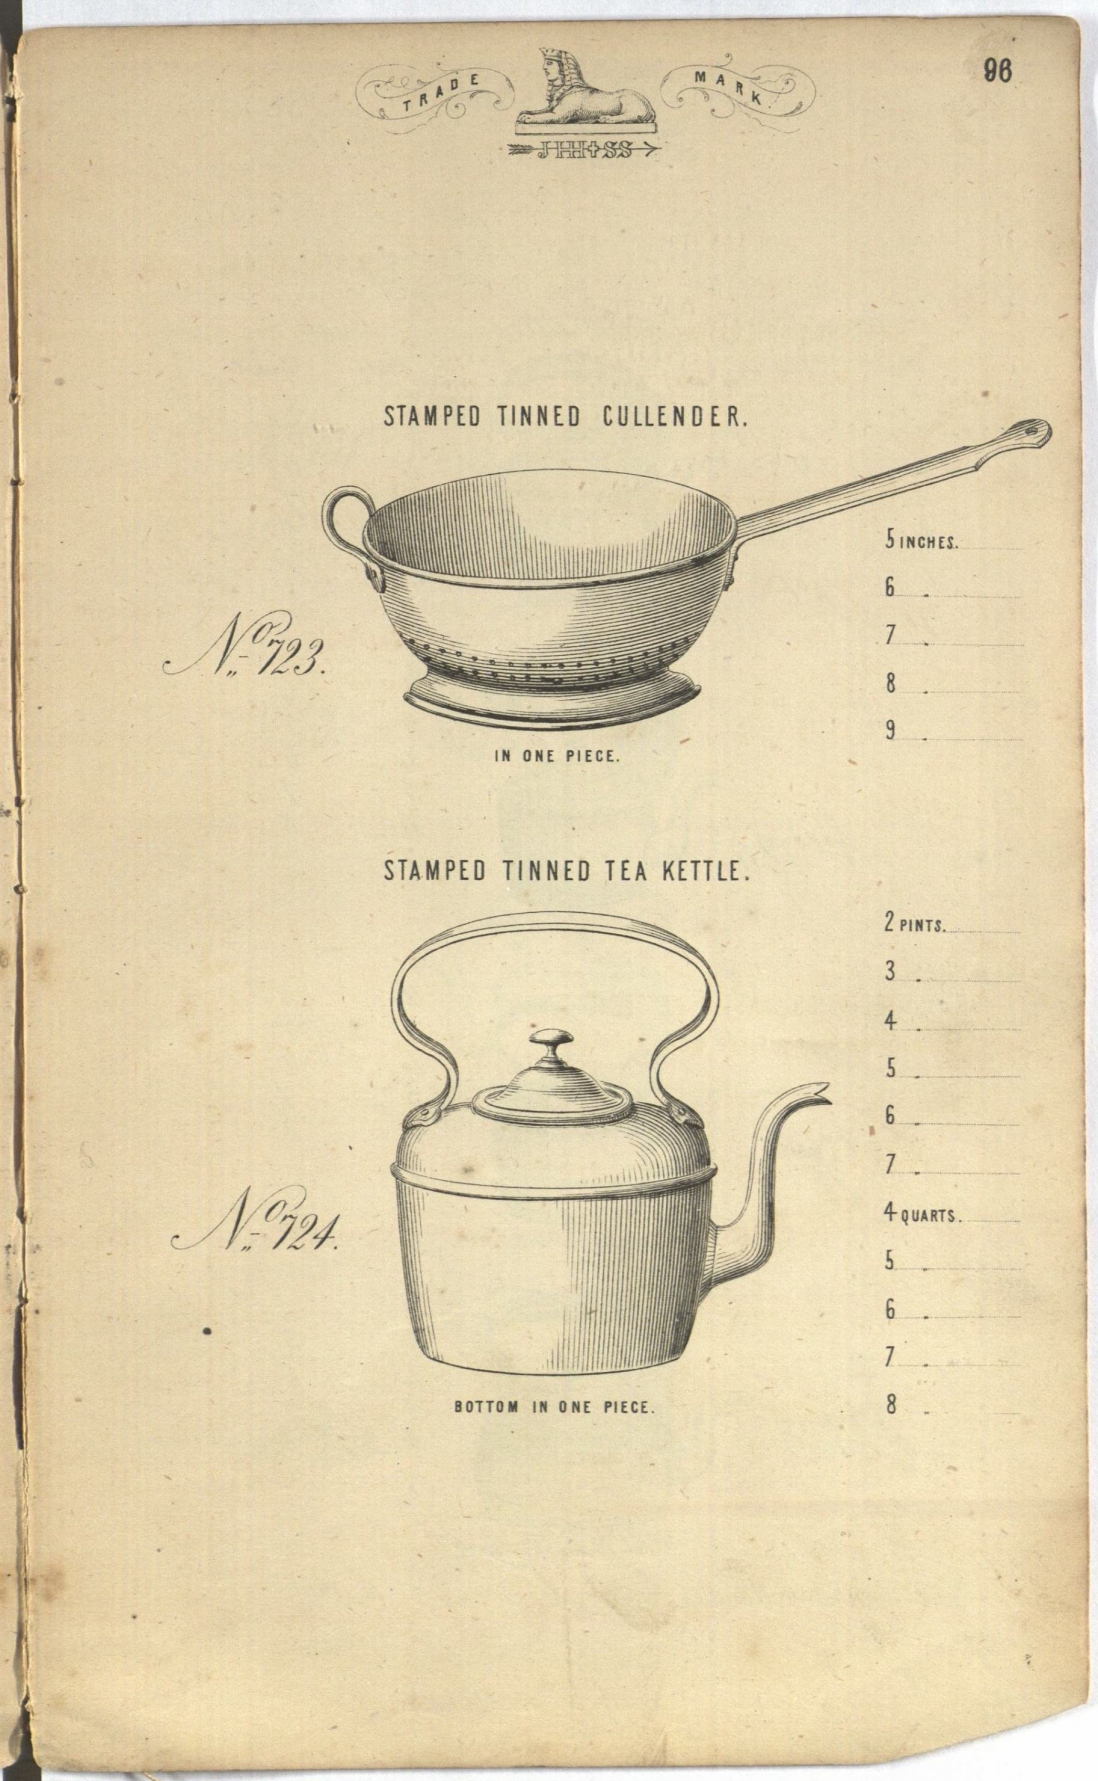 Page from book showing two different tinware items: a colander at the top and a kettle at the bottom.